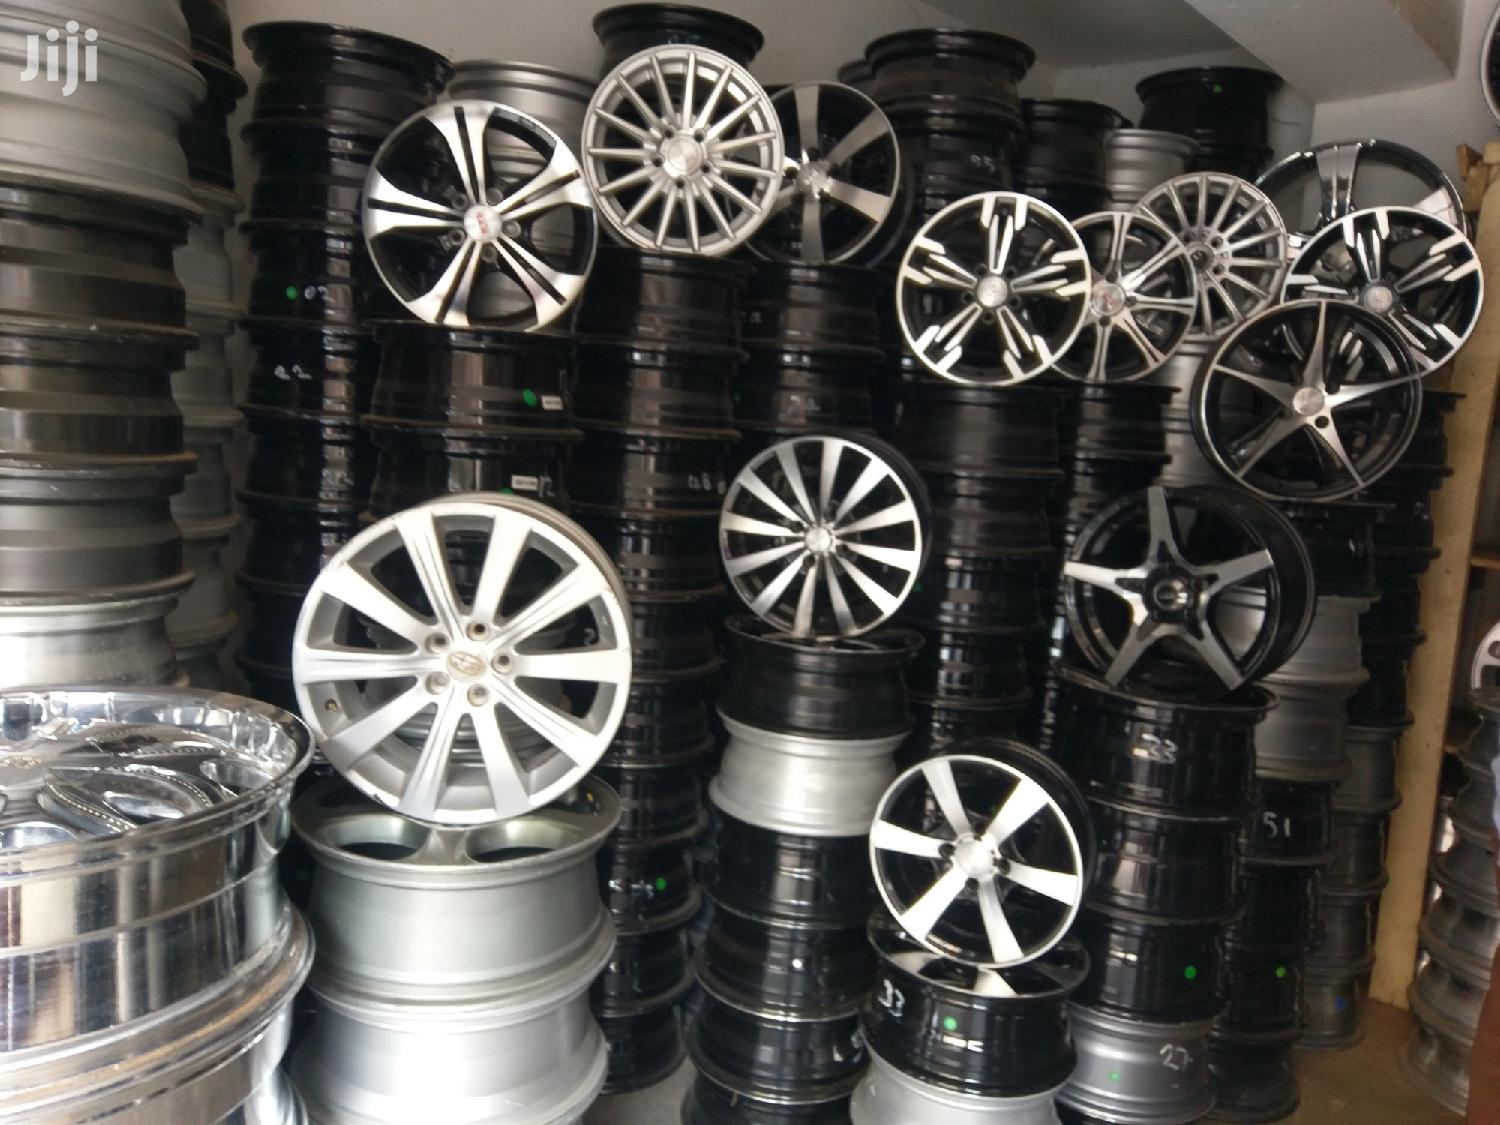 Sport Rims Of All Sizes